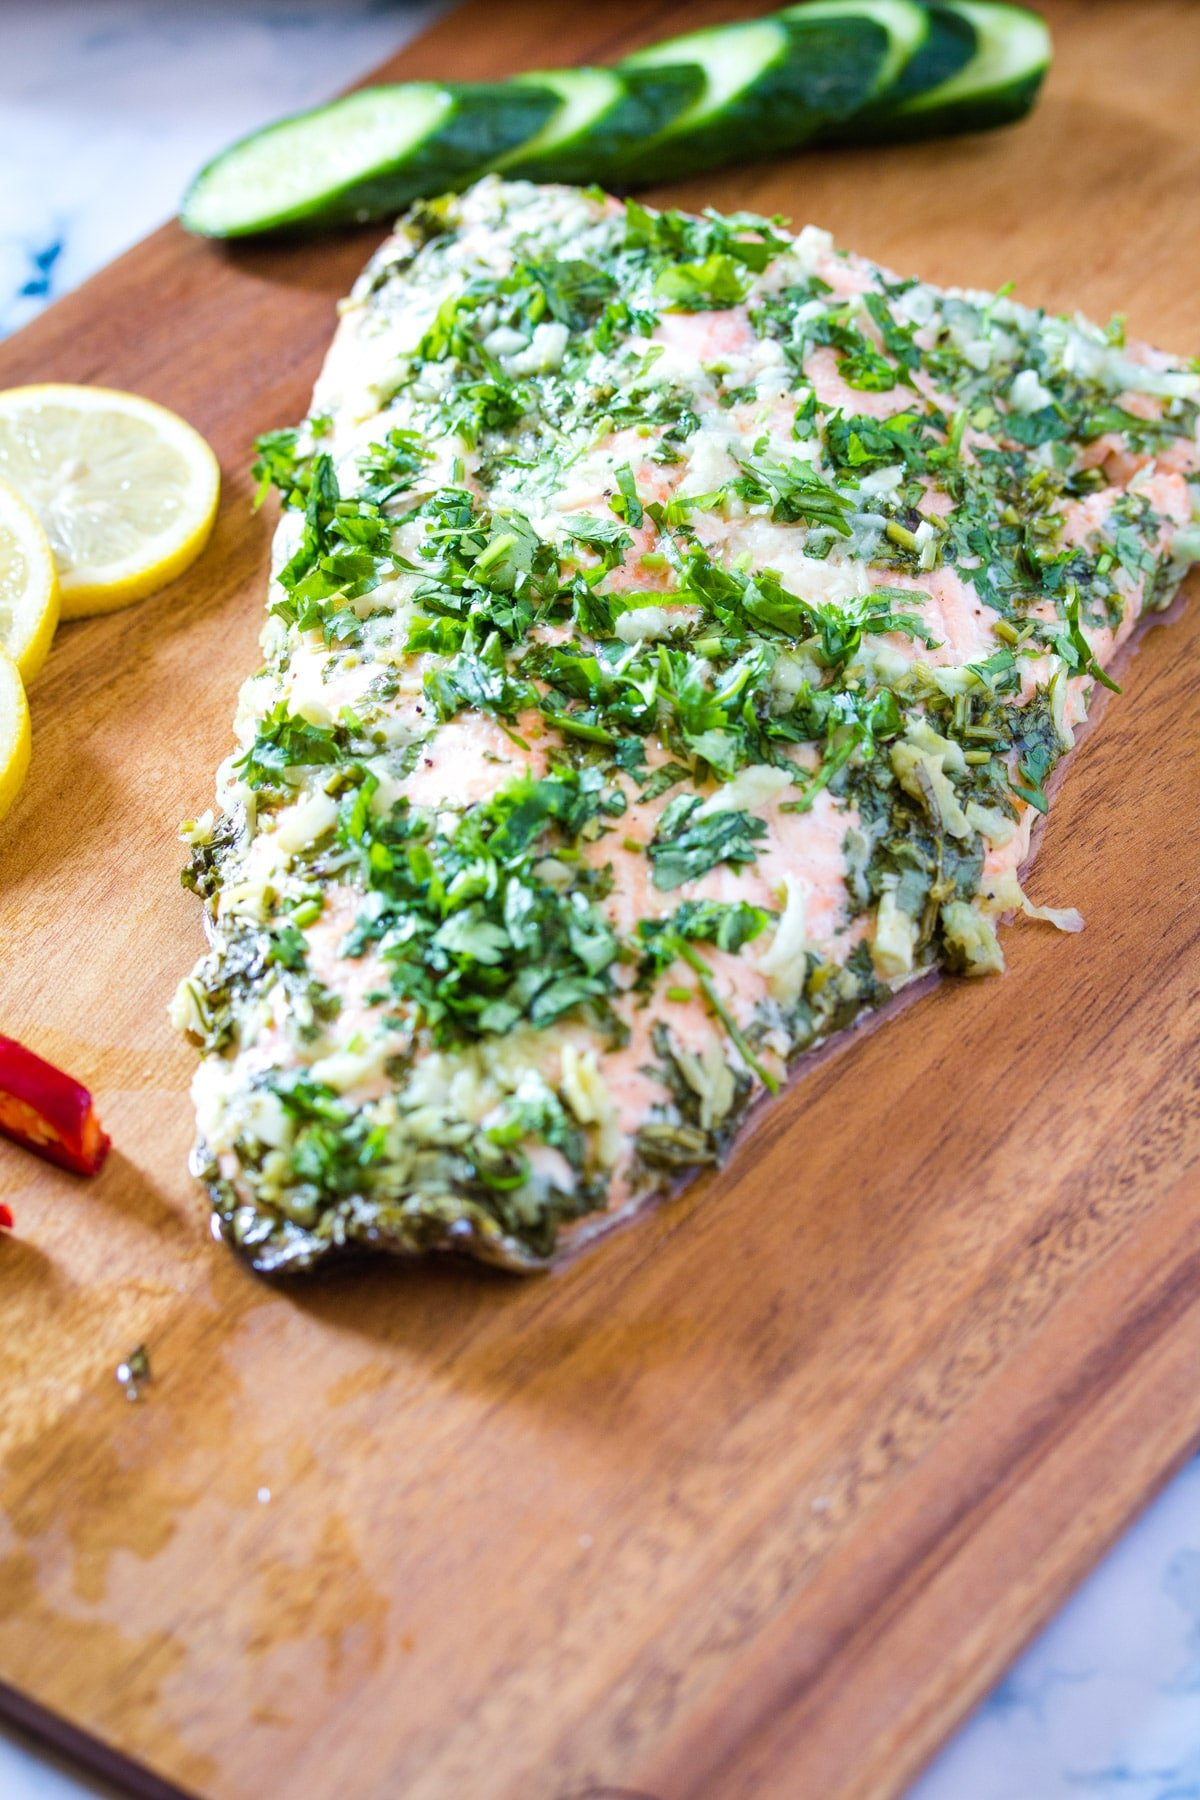 baked salmon served on a wooden cutting board garnished with chopped coriander.